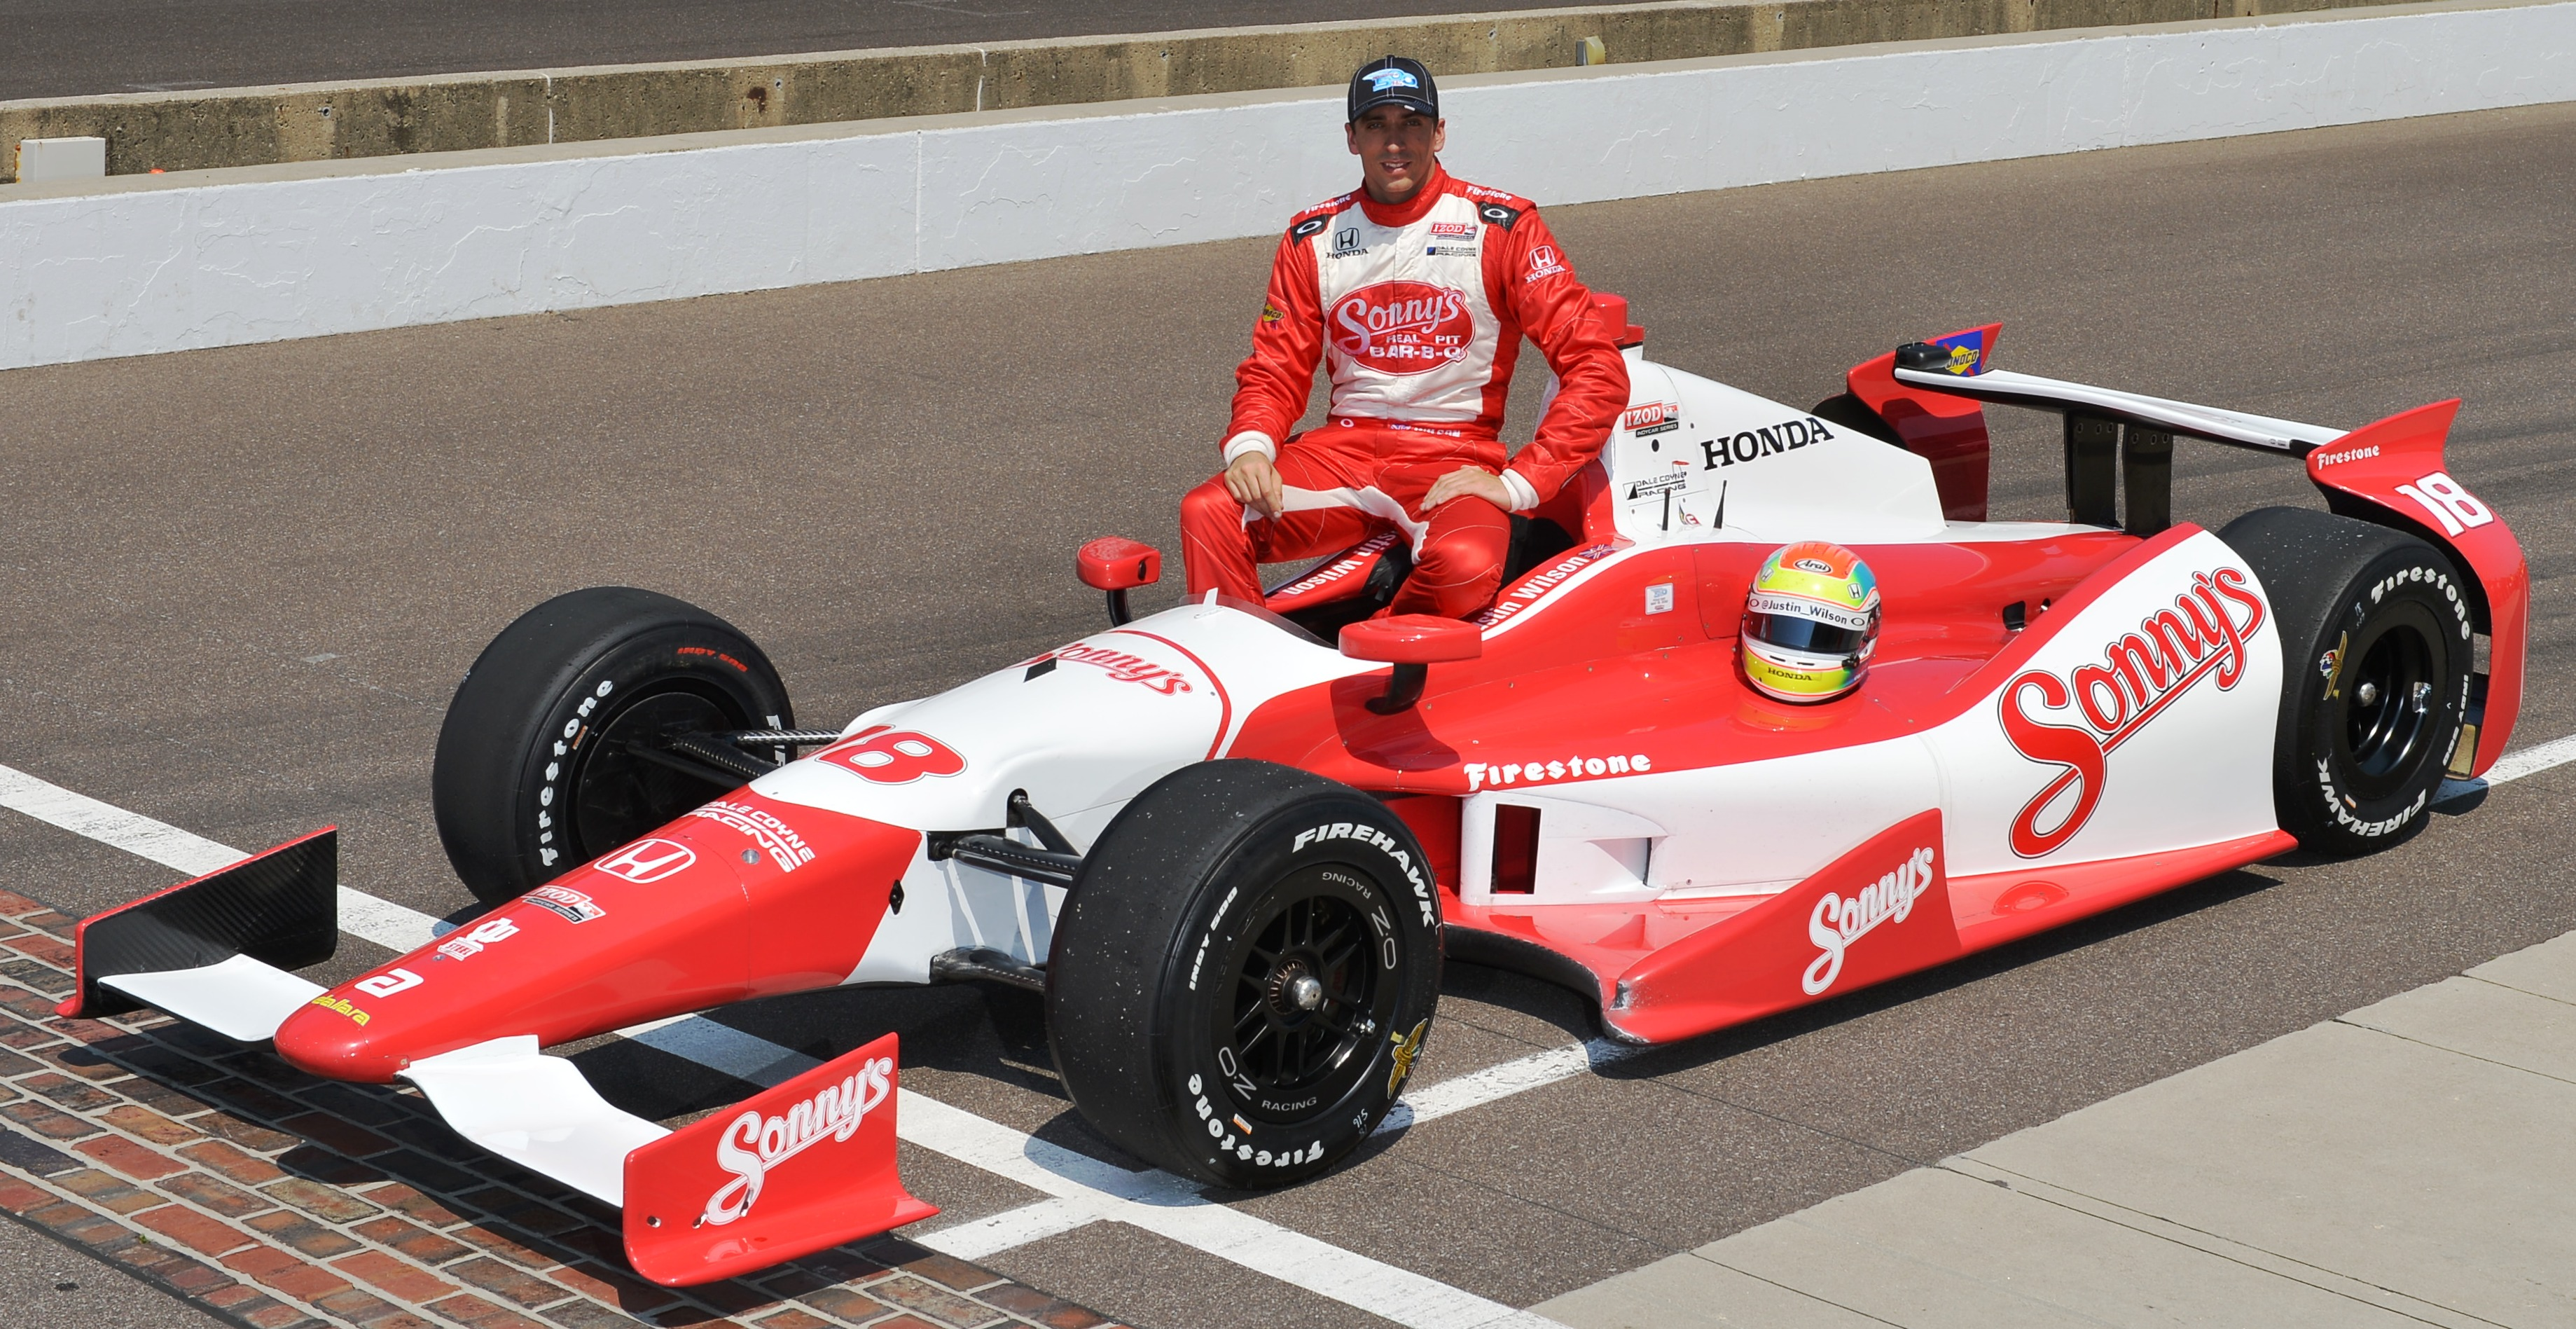 Speedway sightings daily reports from the indianapolis Wilson motor